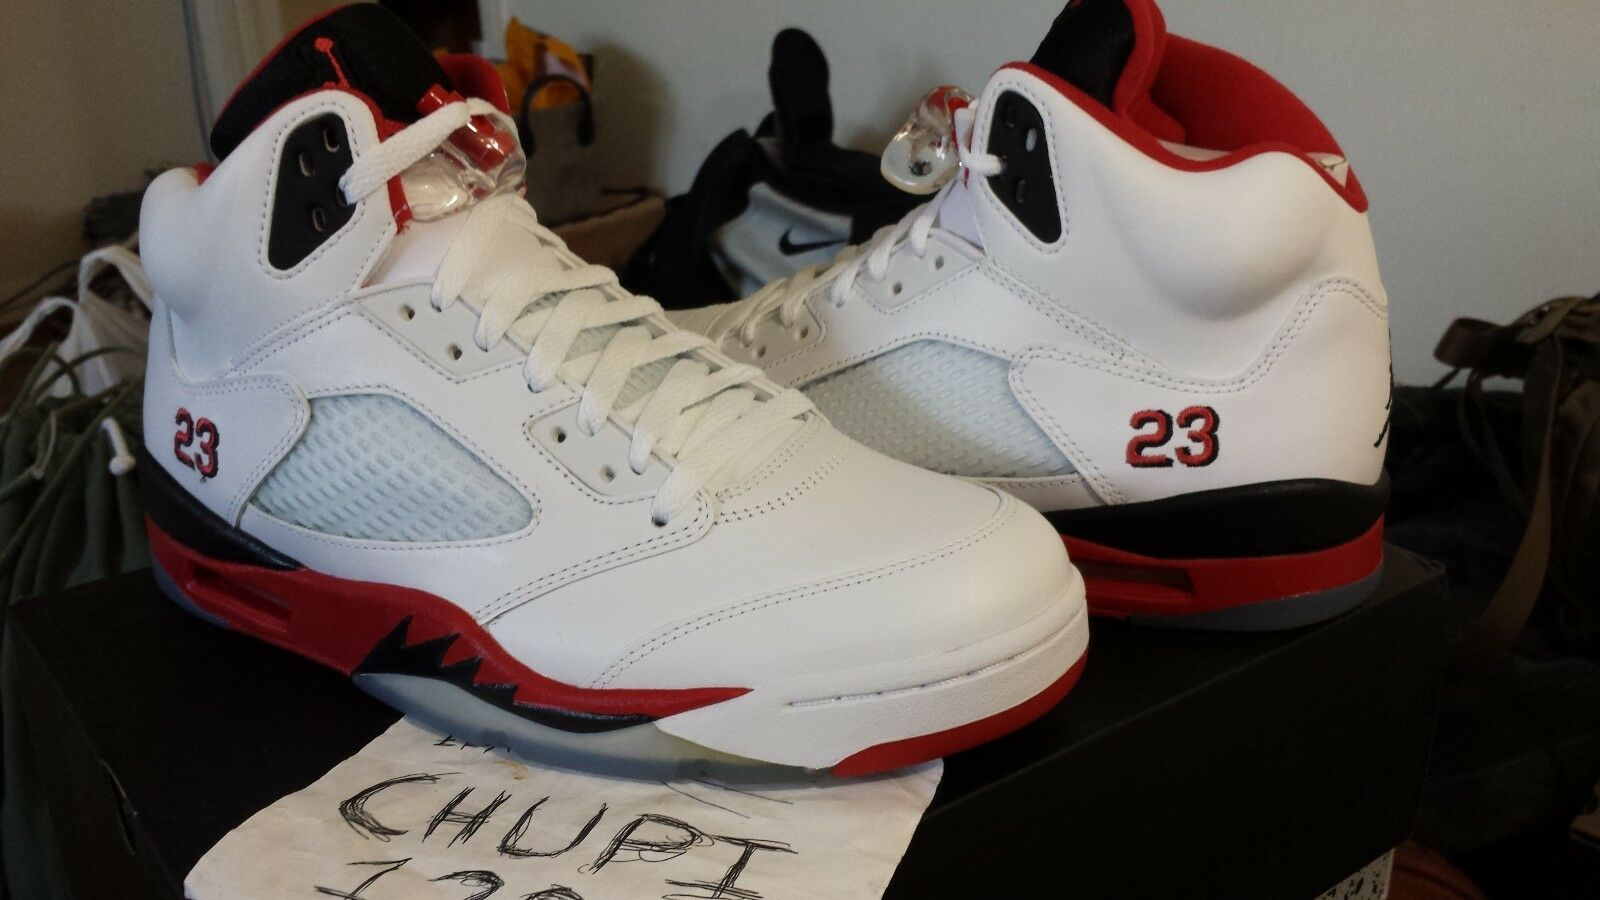 Nike Air Jordan Retro V 5 White Fire Red Black Tongue 23 136027-120 Doernbecher Cheap and beautiful fashion